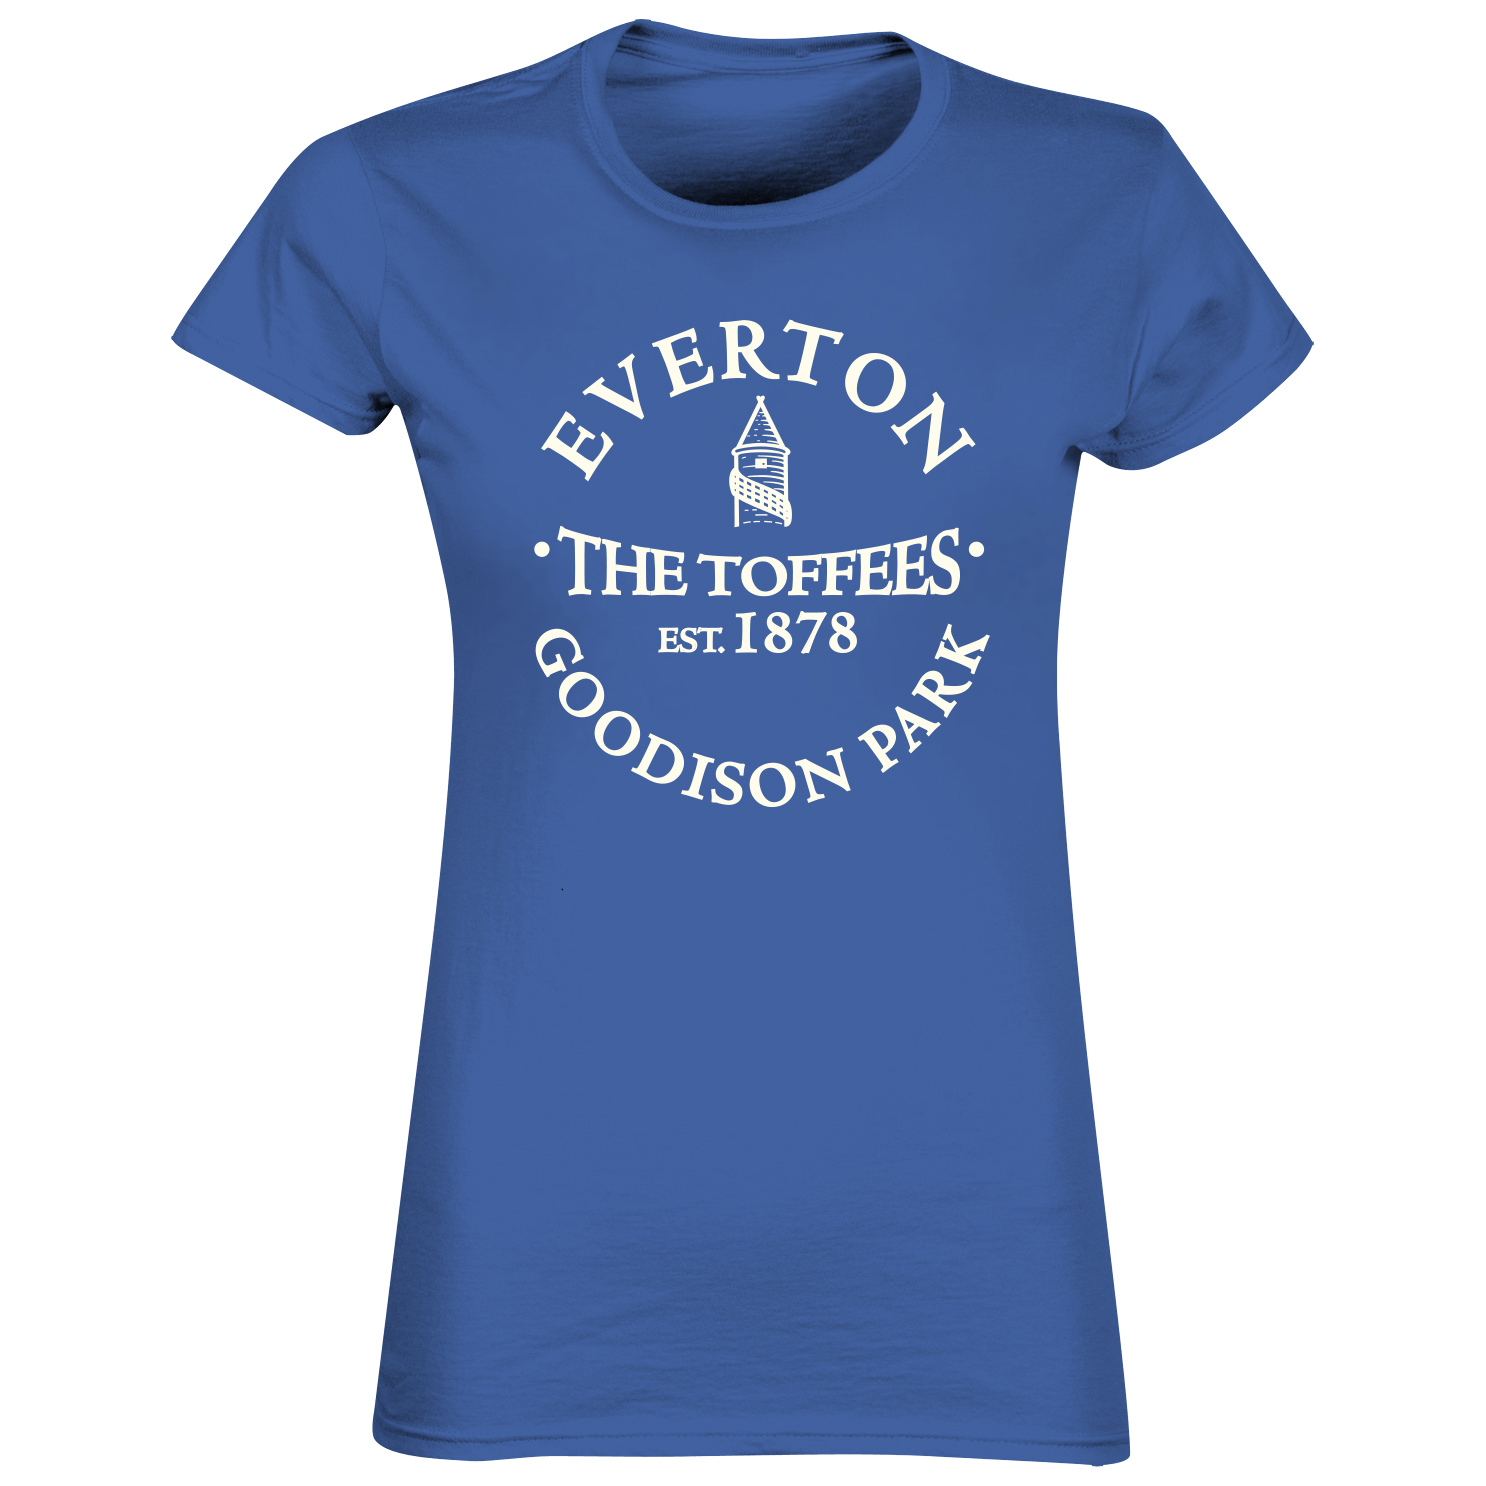 Everton 2for?20 Toffees T-Shirt - Royal - Womens